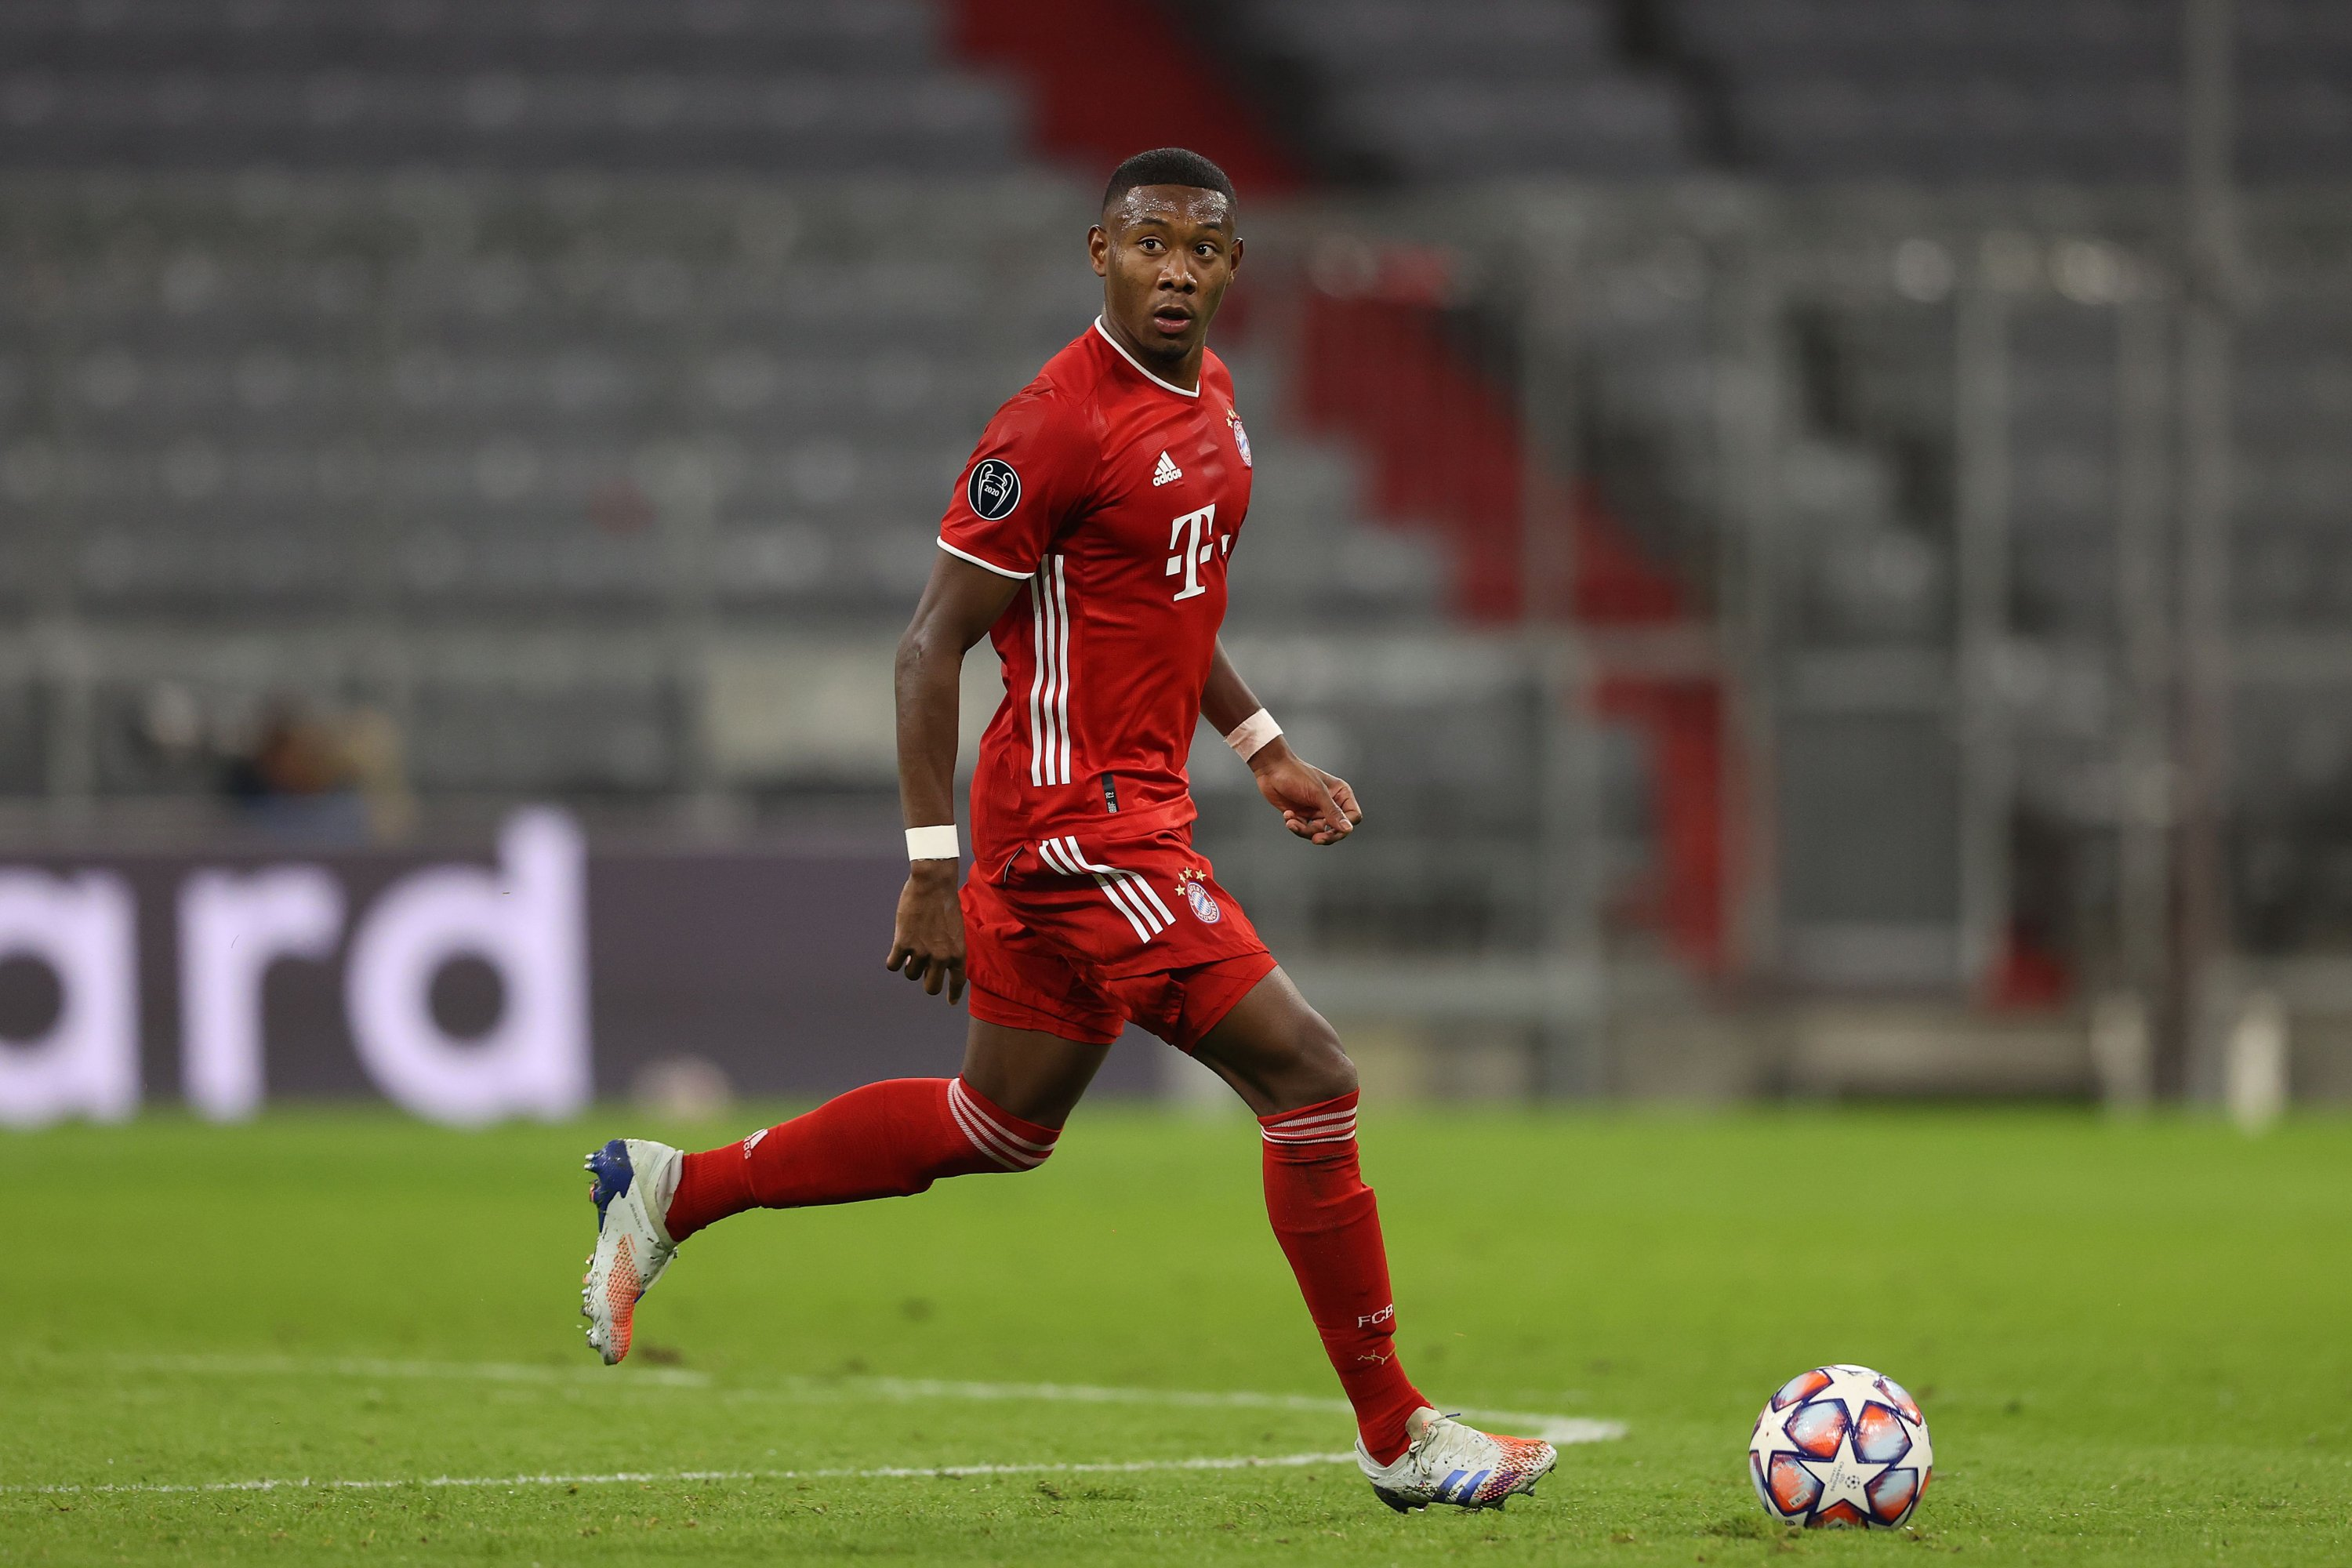 LFC-target David Alaba's new demand throws Premier League move into serious doubt – report